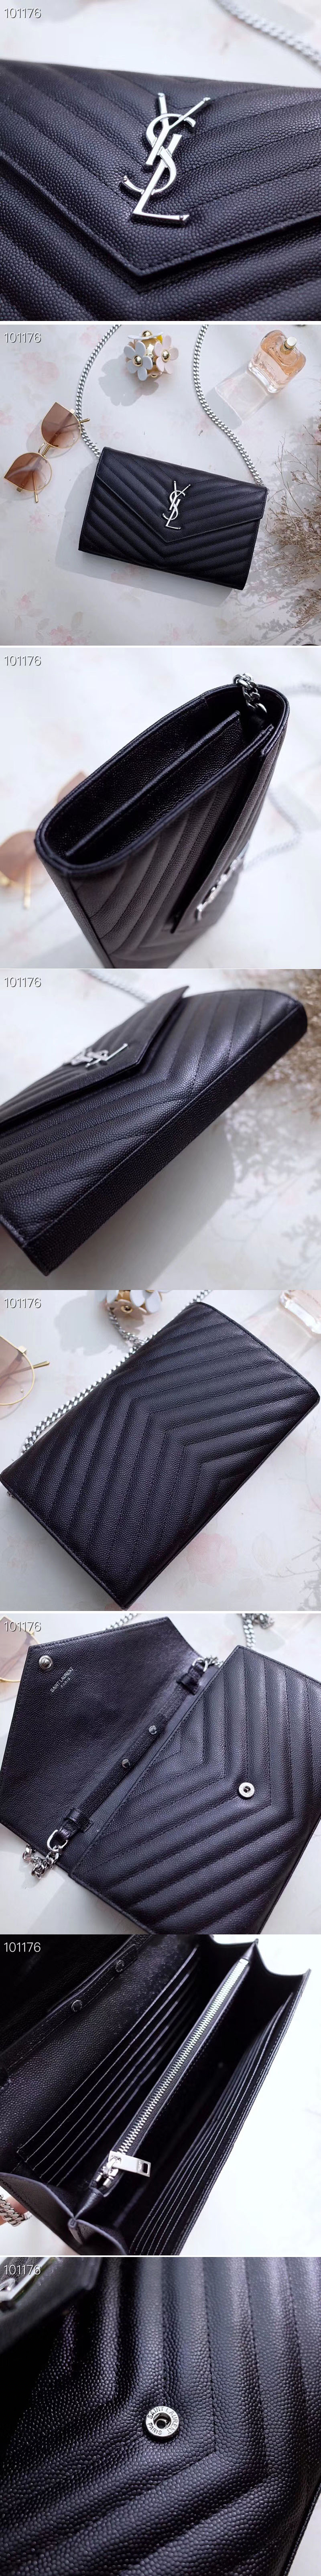 Replica YSL 377828 Saint Laurent Chain Wallet Black Matelasse Leather Silver Hardware